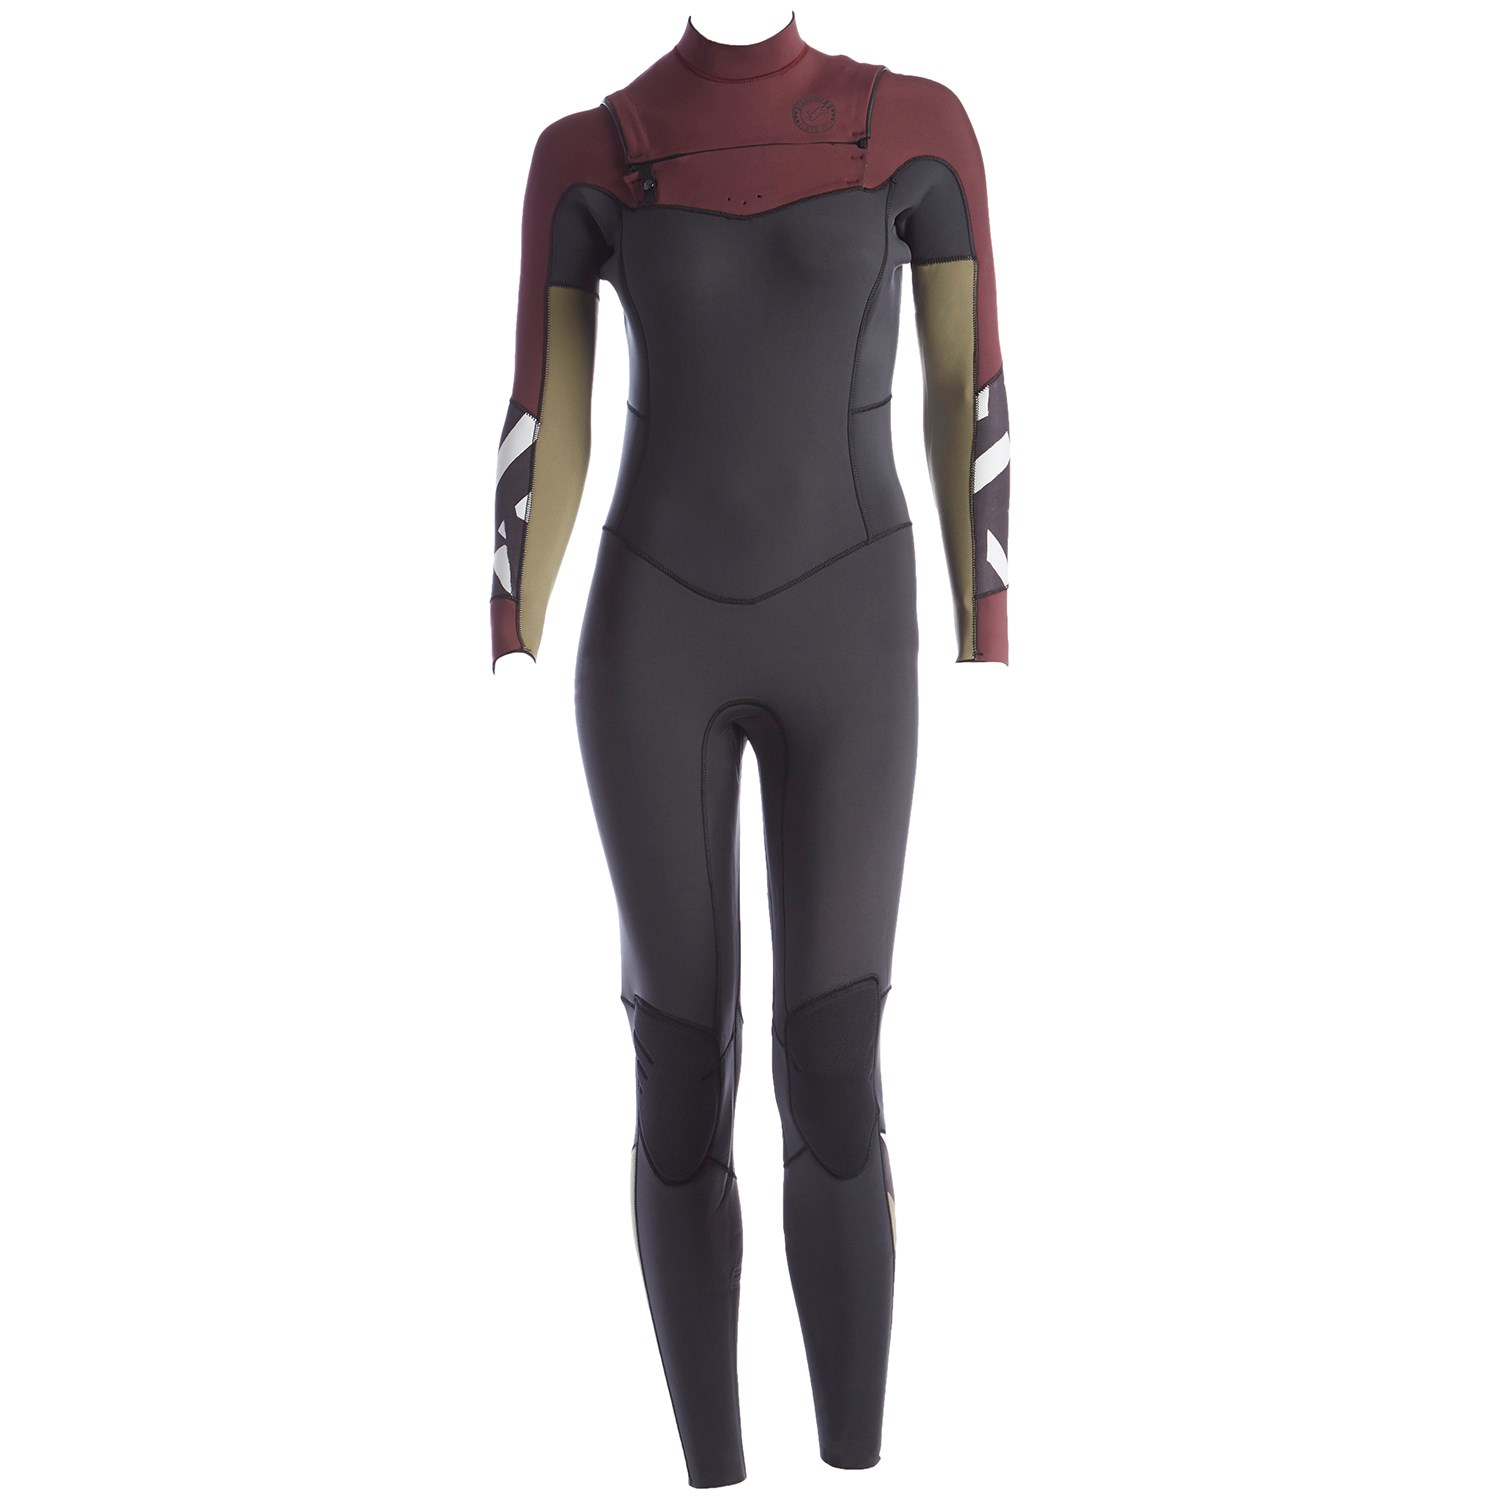 bd98fe804e Billabong 4 3 Salty Dayz GBS Chest Zip Wetsuit - Women s